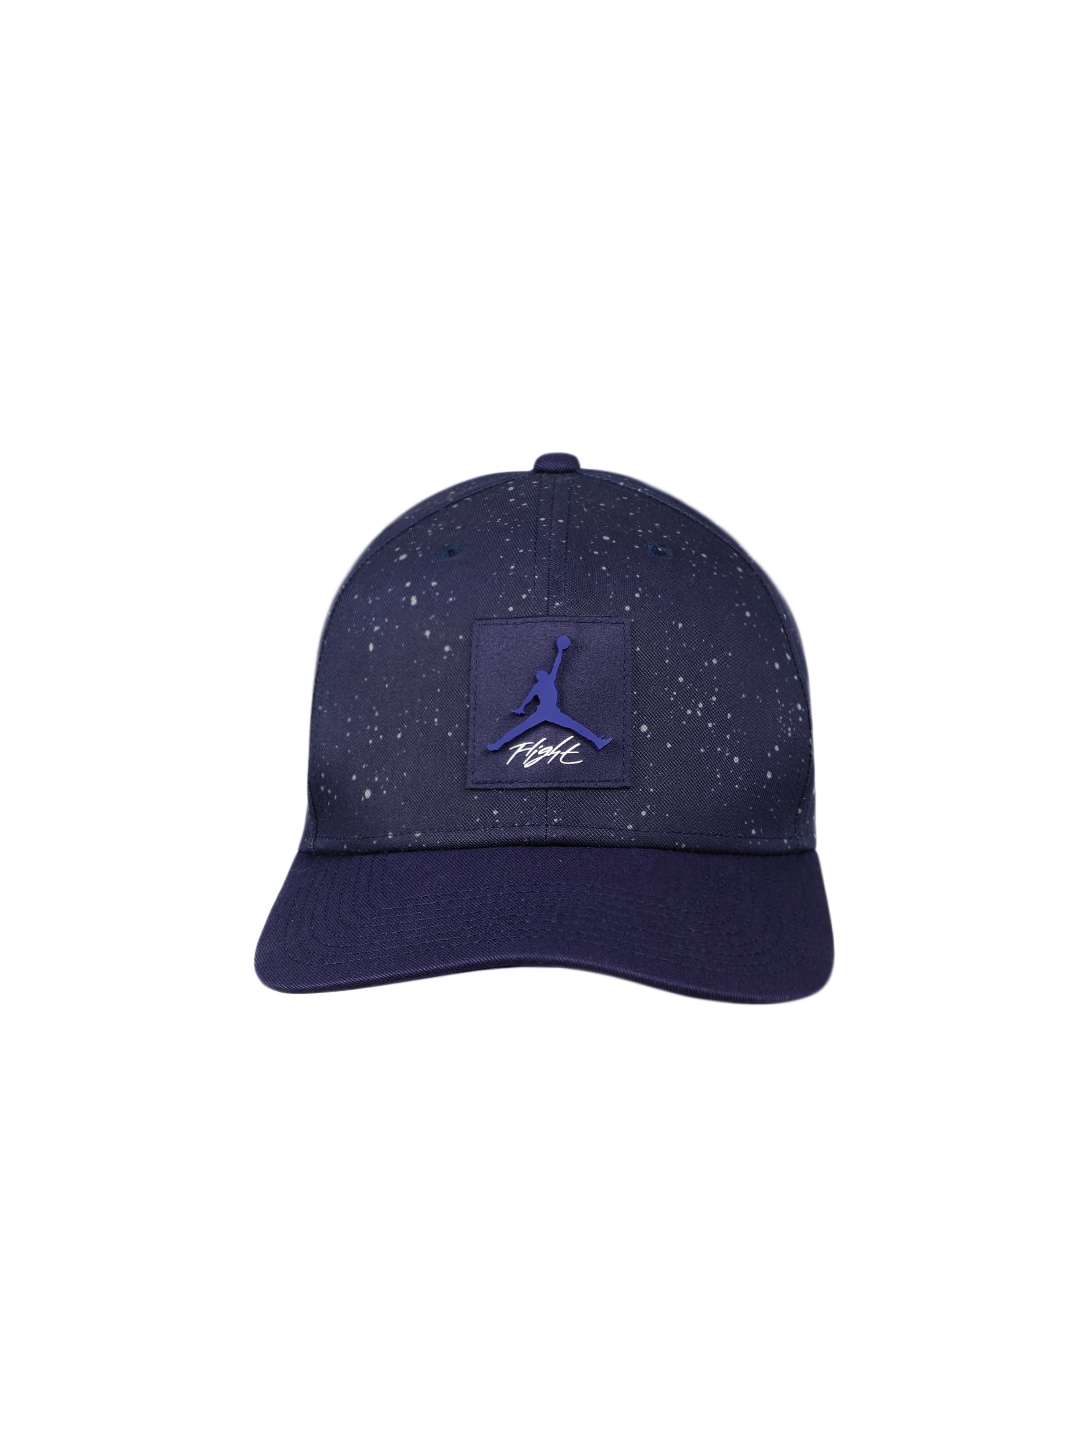 c87f0e76 ... canada nike cap buy nike caps for men women online in india myntra  89691 25b94